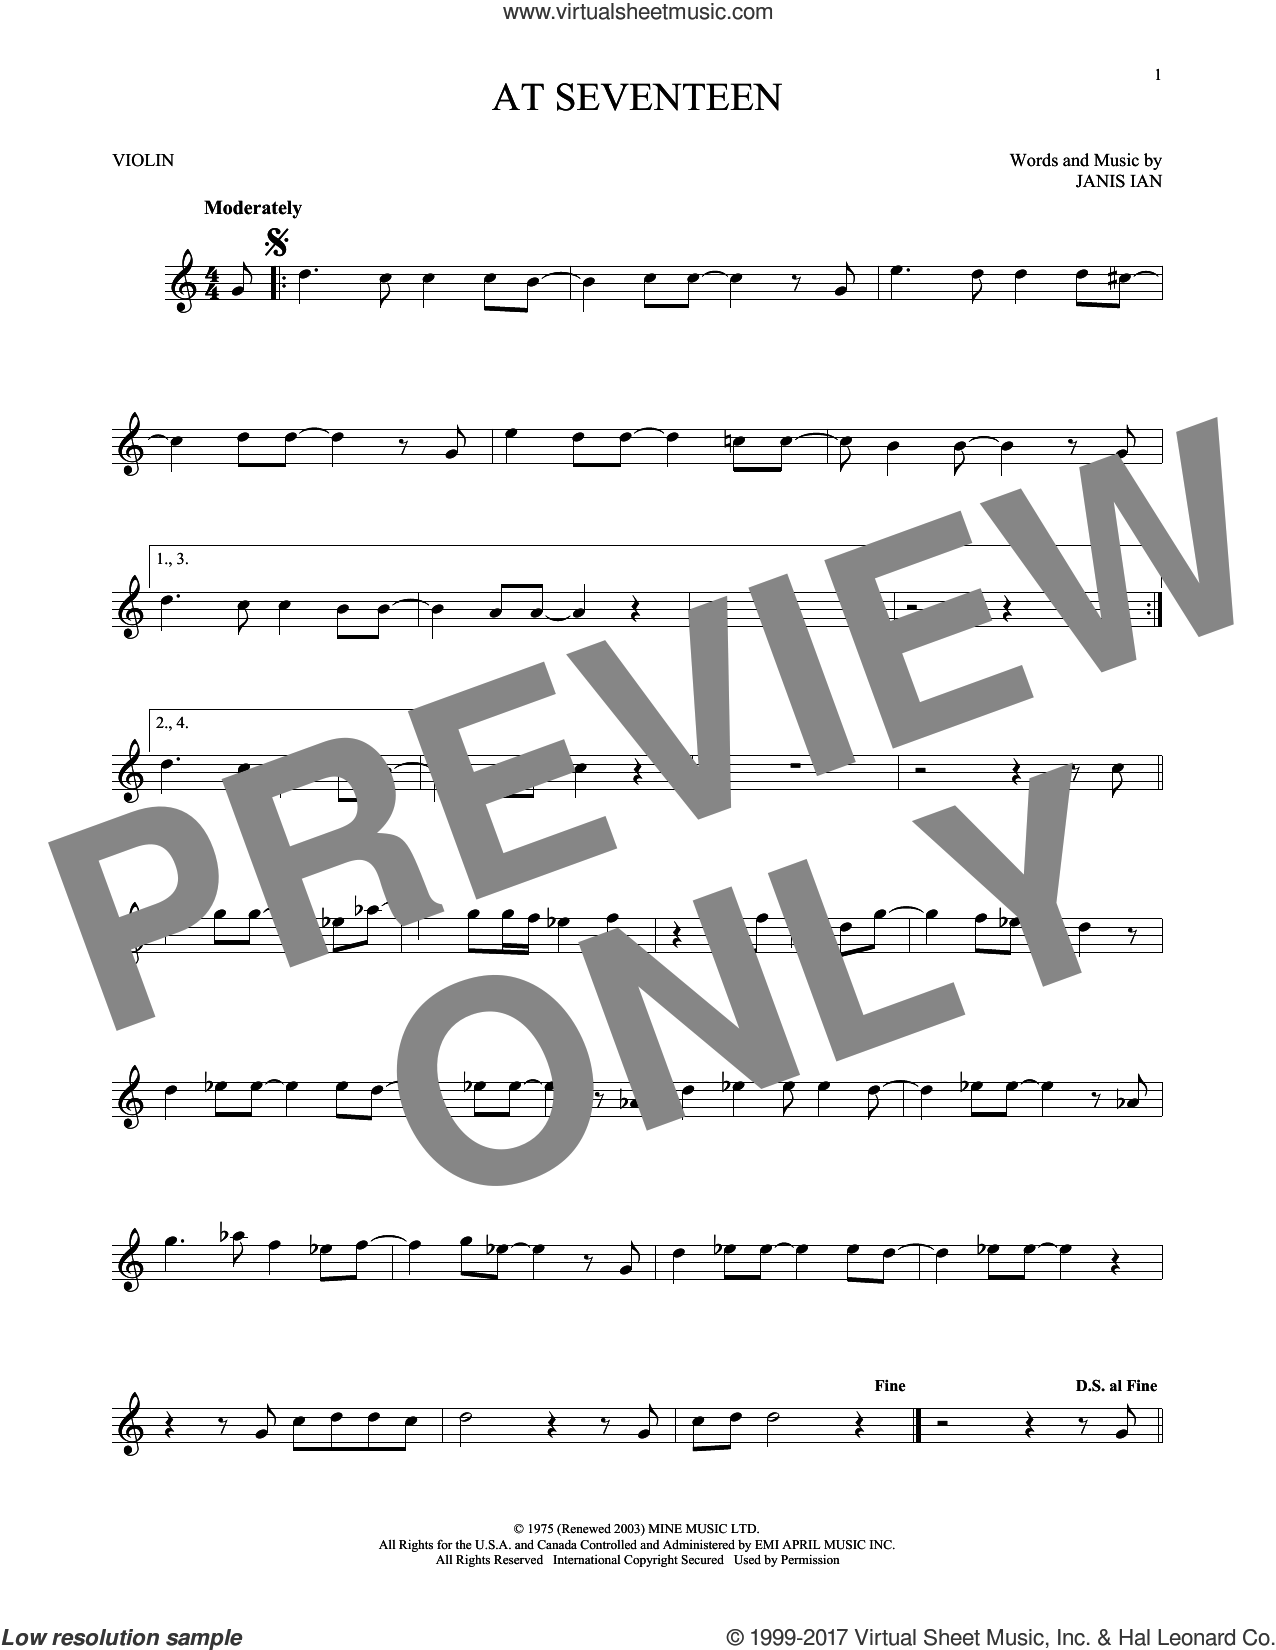 At Seventeen sheet music for violin solo by Janis Ian, intermediate